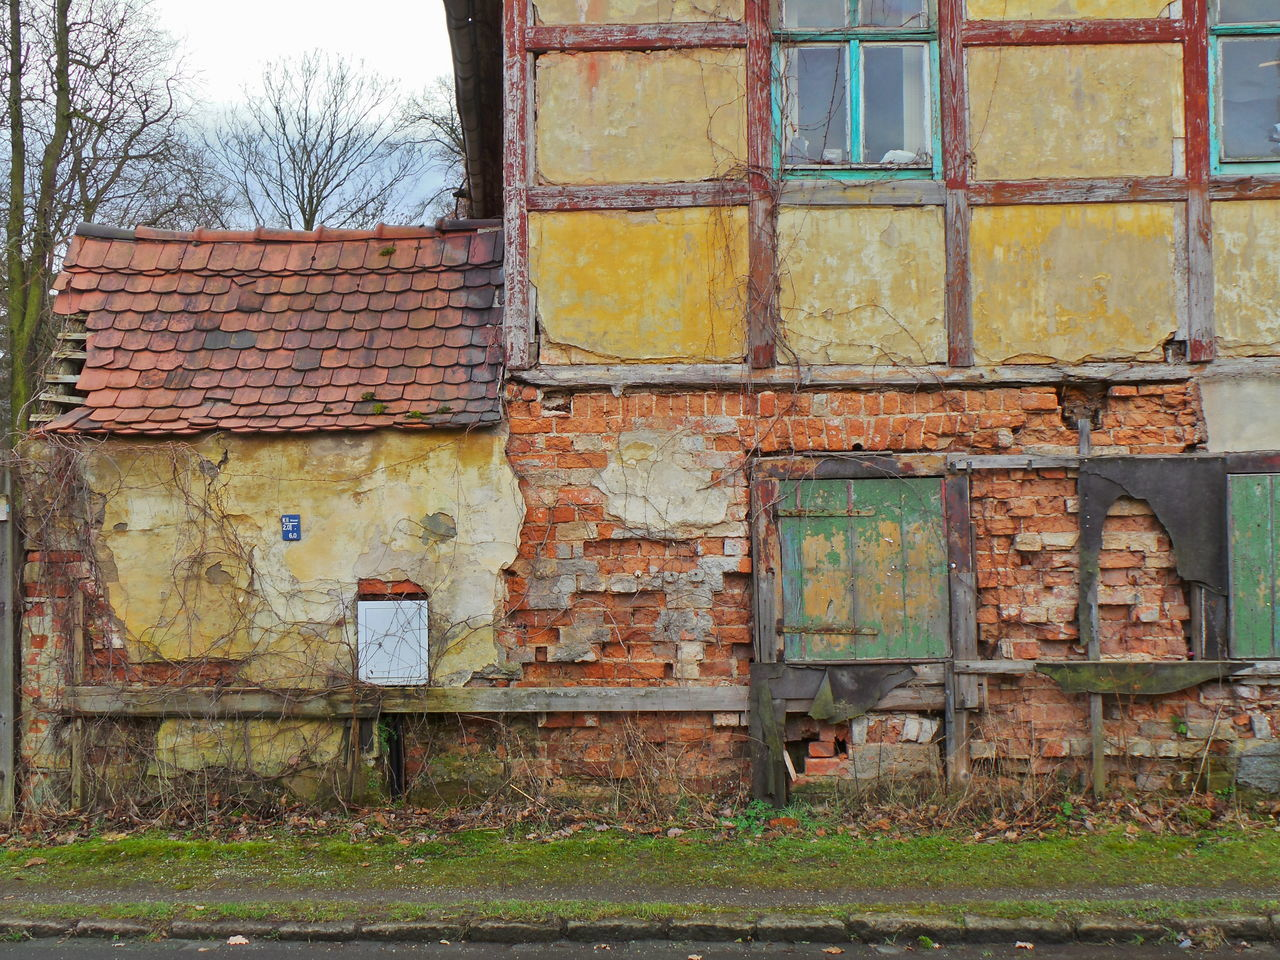 architecture, building exterior, built structure, house, residential structure, damaged, residential building, abandoned, window, brick wall, obsolete, deterioration, weathered, bad condition, ruined, day, outdoors, exterior, rural scene, peeling off, no people, residential district, worn out, dirty